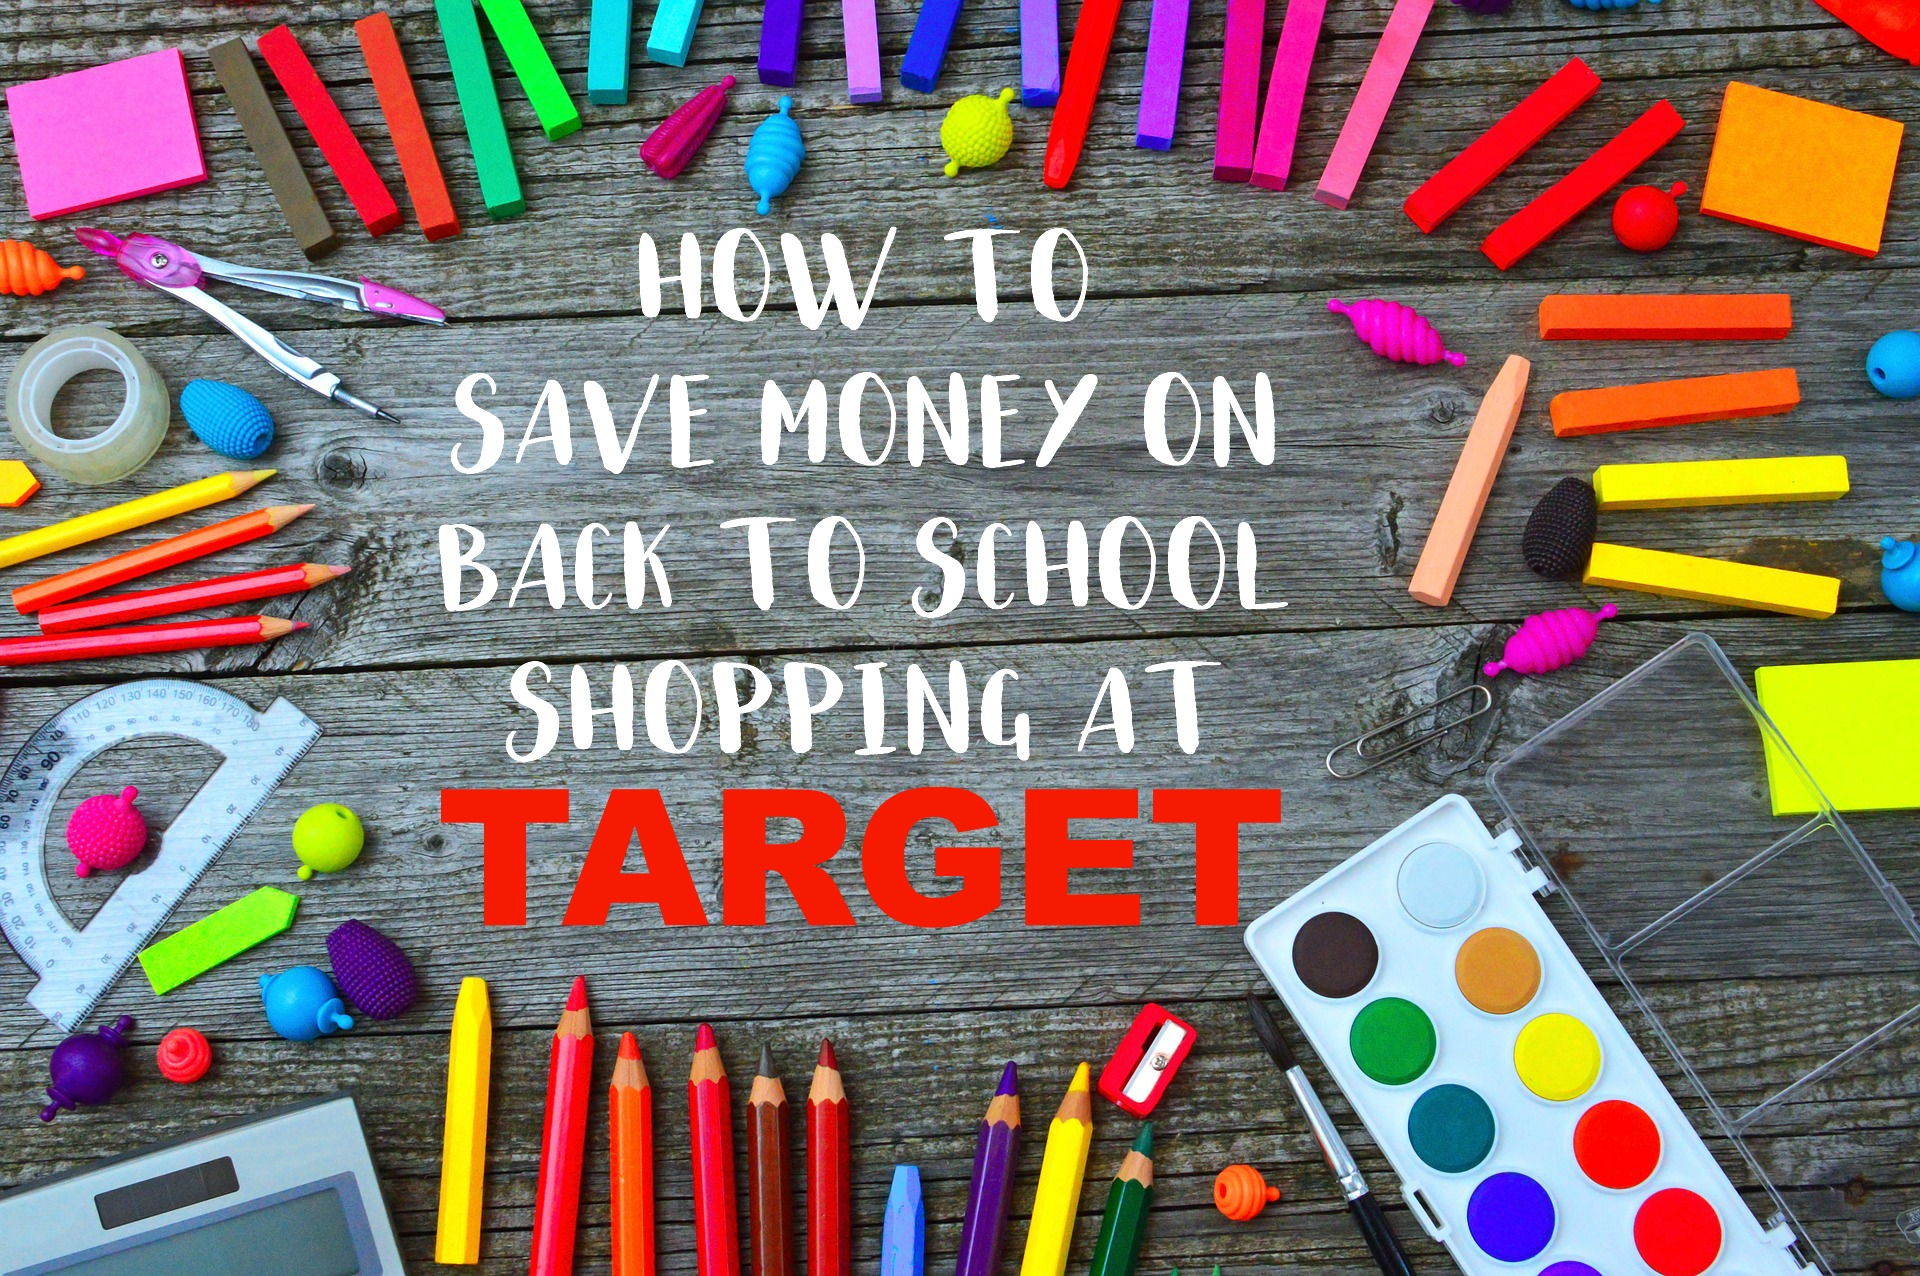 How to save money on back to school shopping at target, back to school shopping savings, #backtoschool